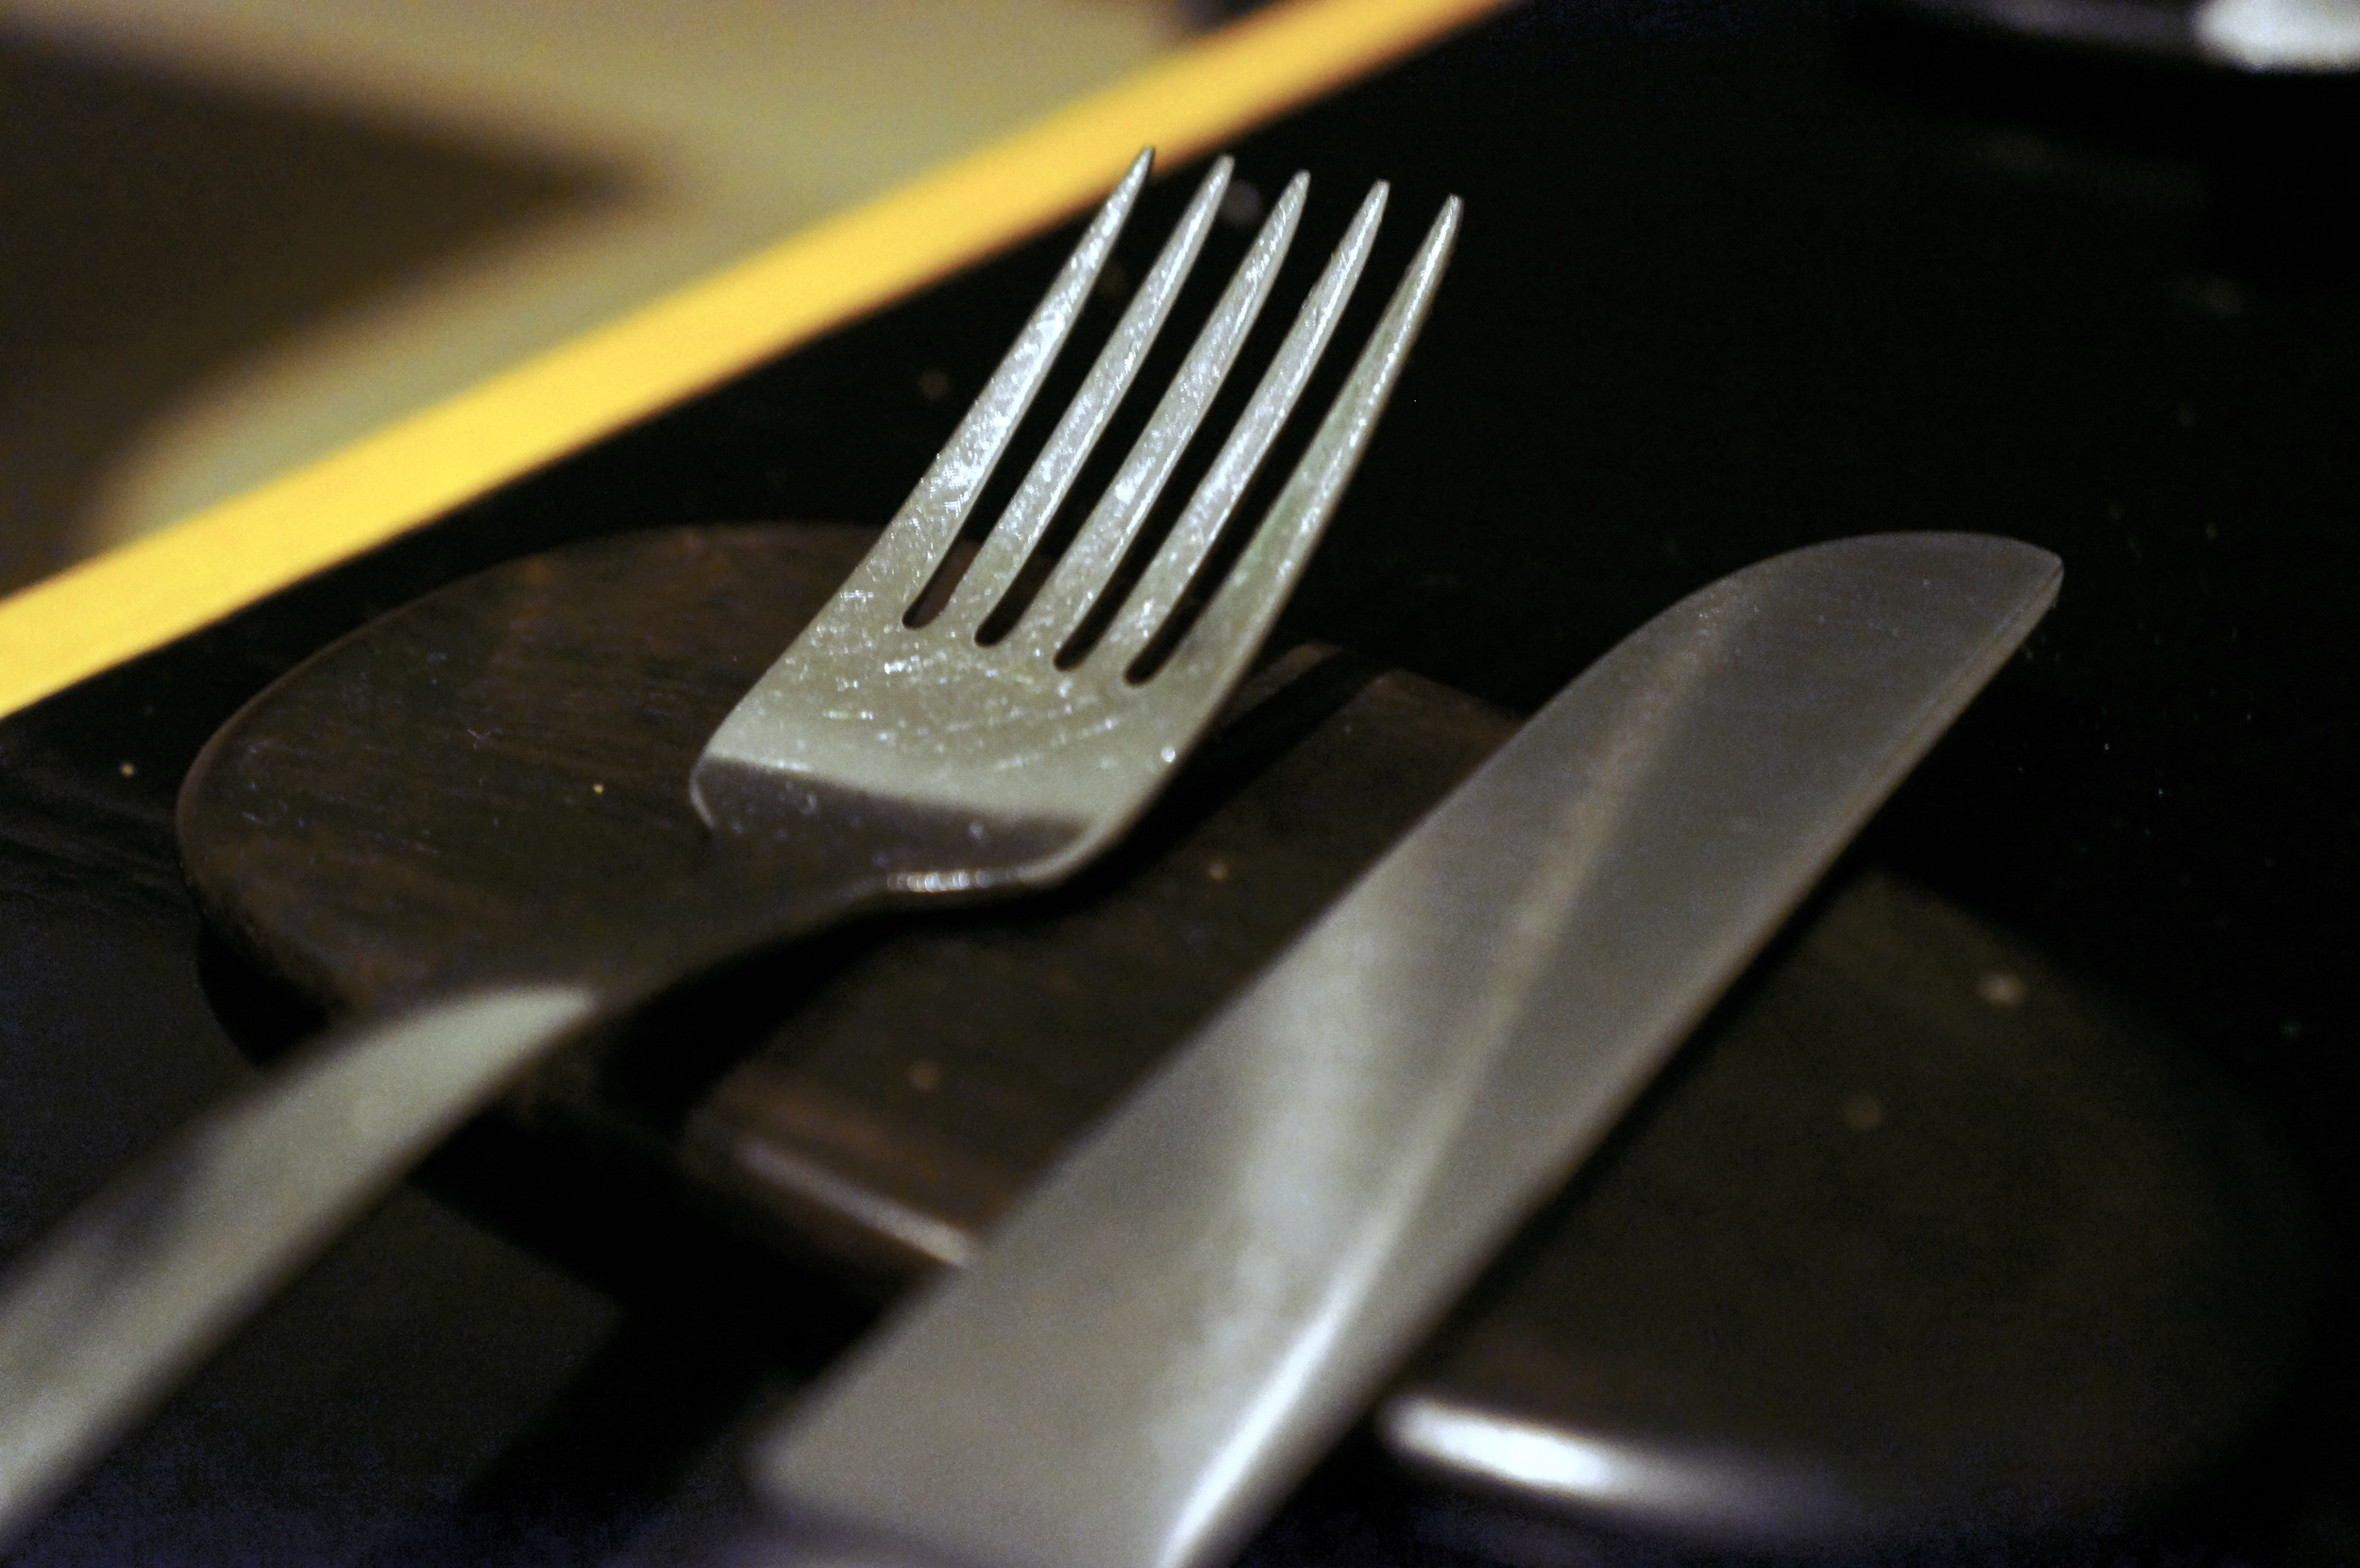 Love these 5-prong forks.